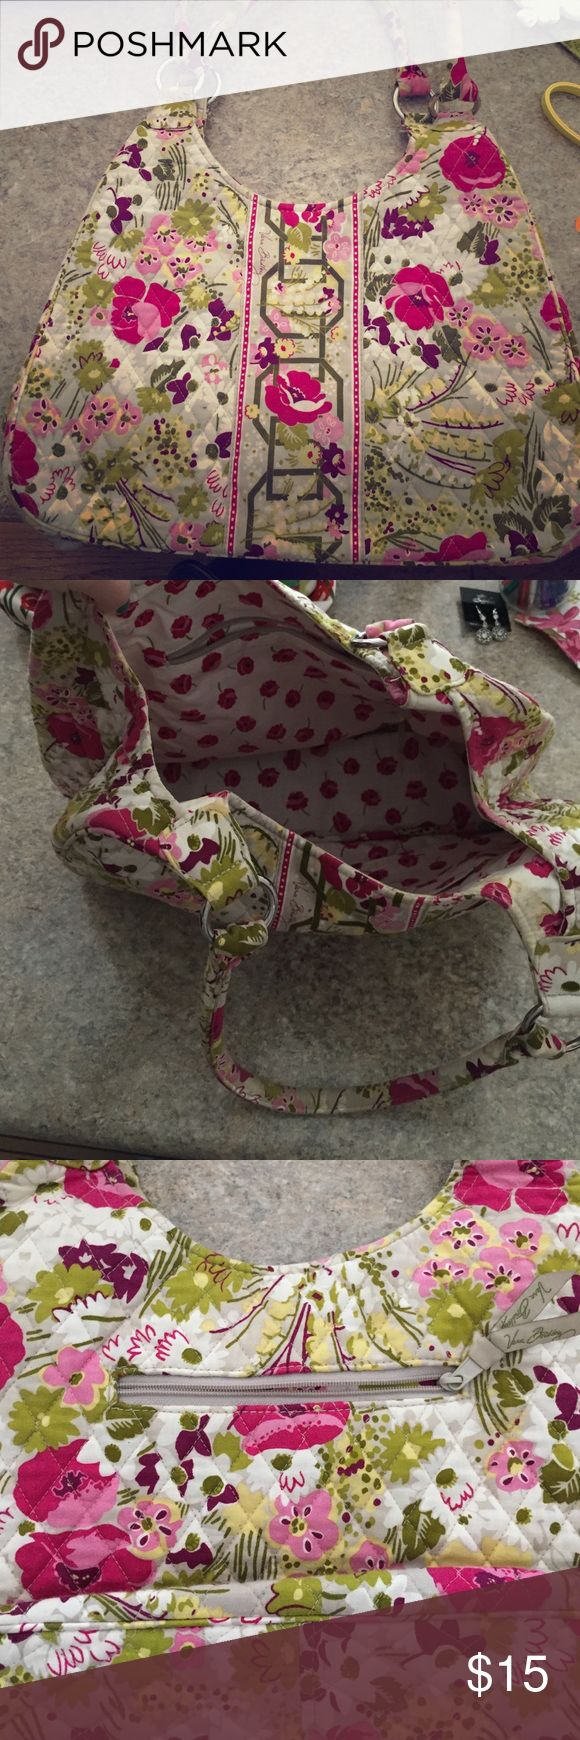 Vera Bradley purse Floral Vera Bradley purse. Gently used. Stains on inside but would probably come out with oxy clean and a wash. Vera Bradley Bags Shoulder Bags